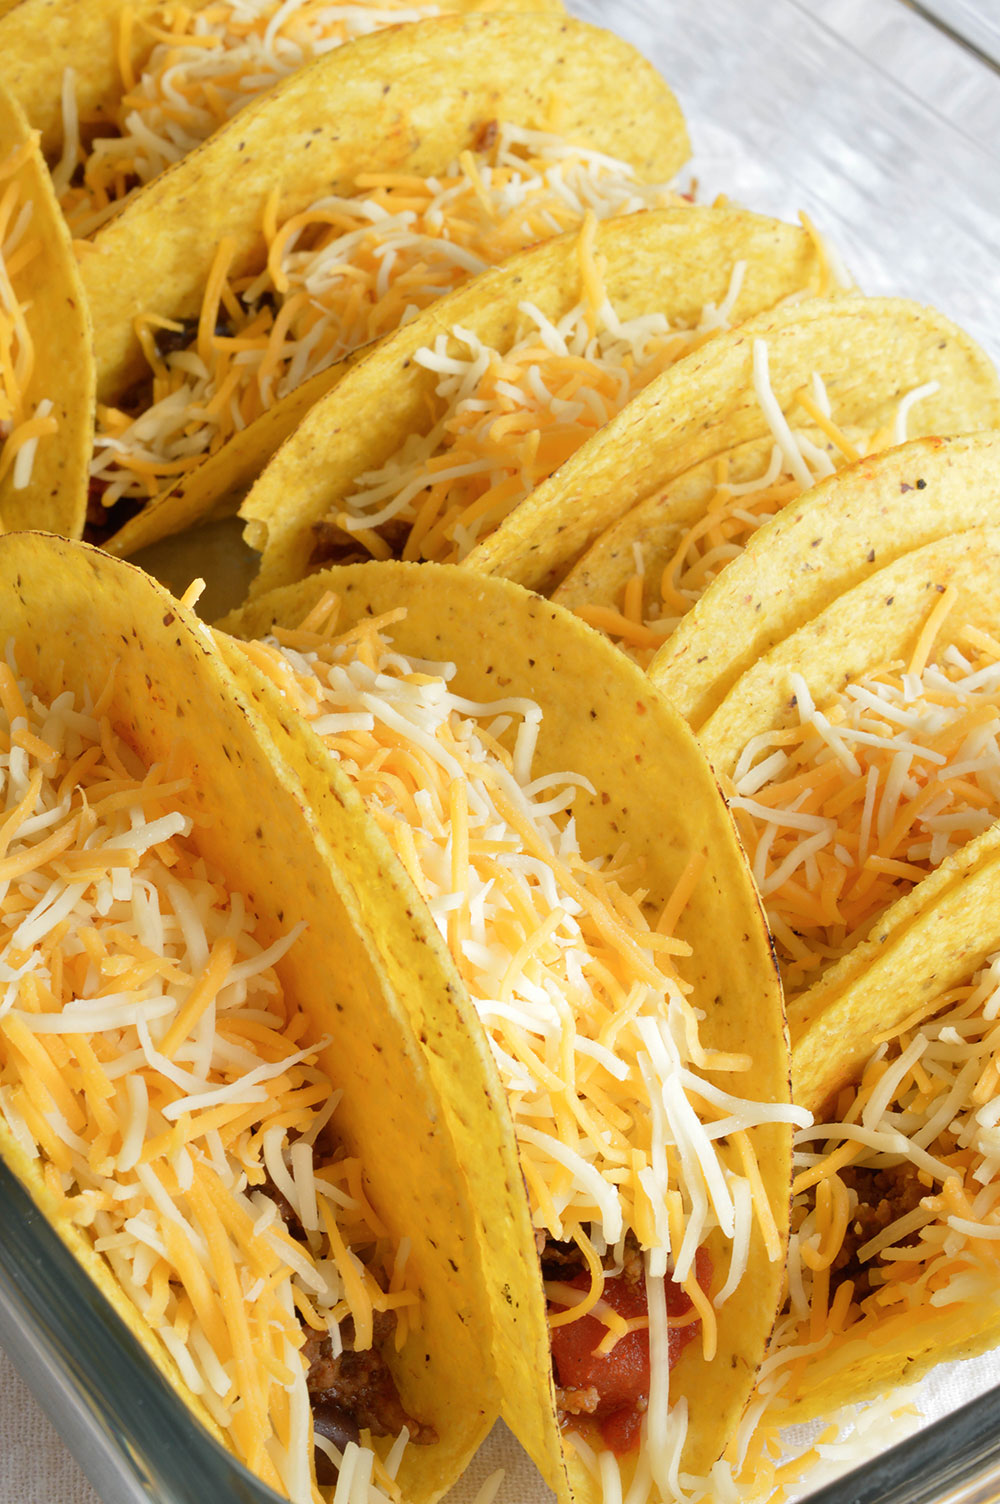 ... taco recipe is full of flavor and melty cheese! Also a great weeknight